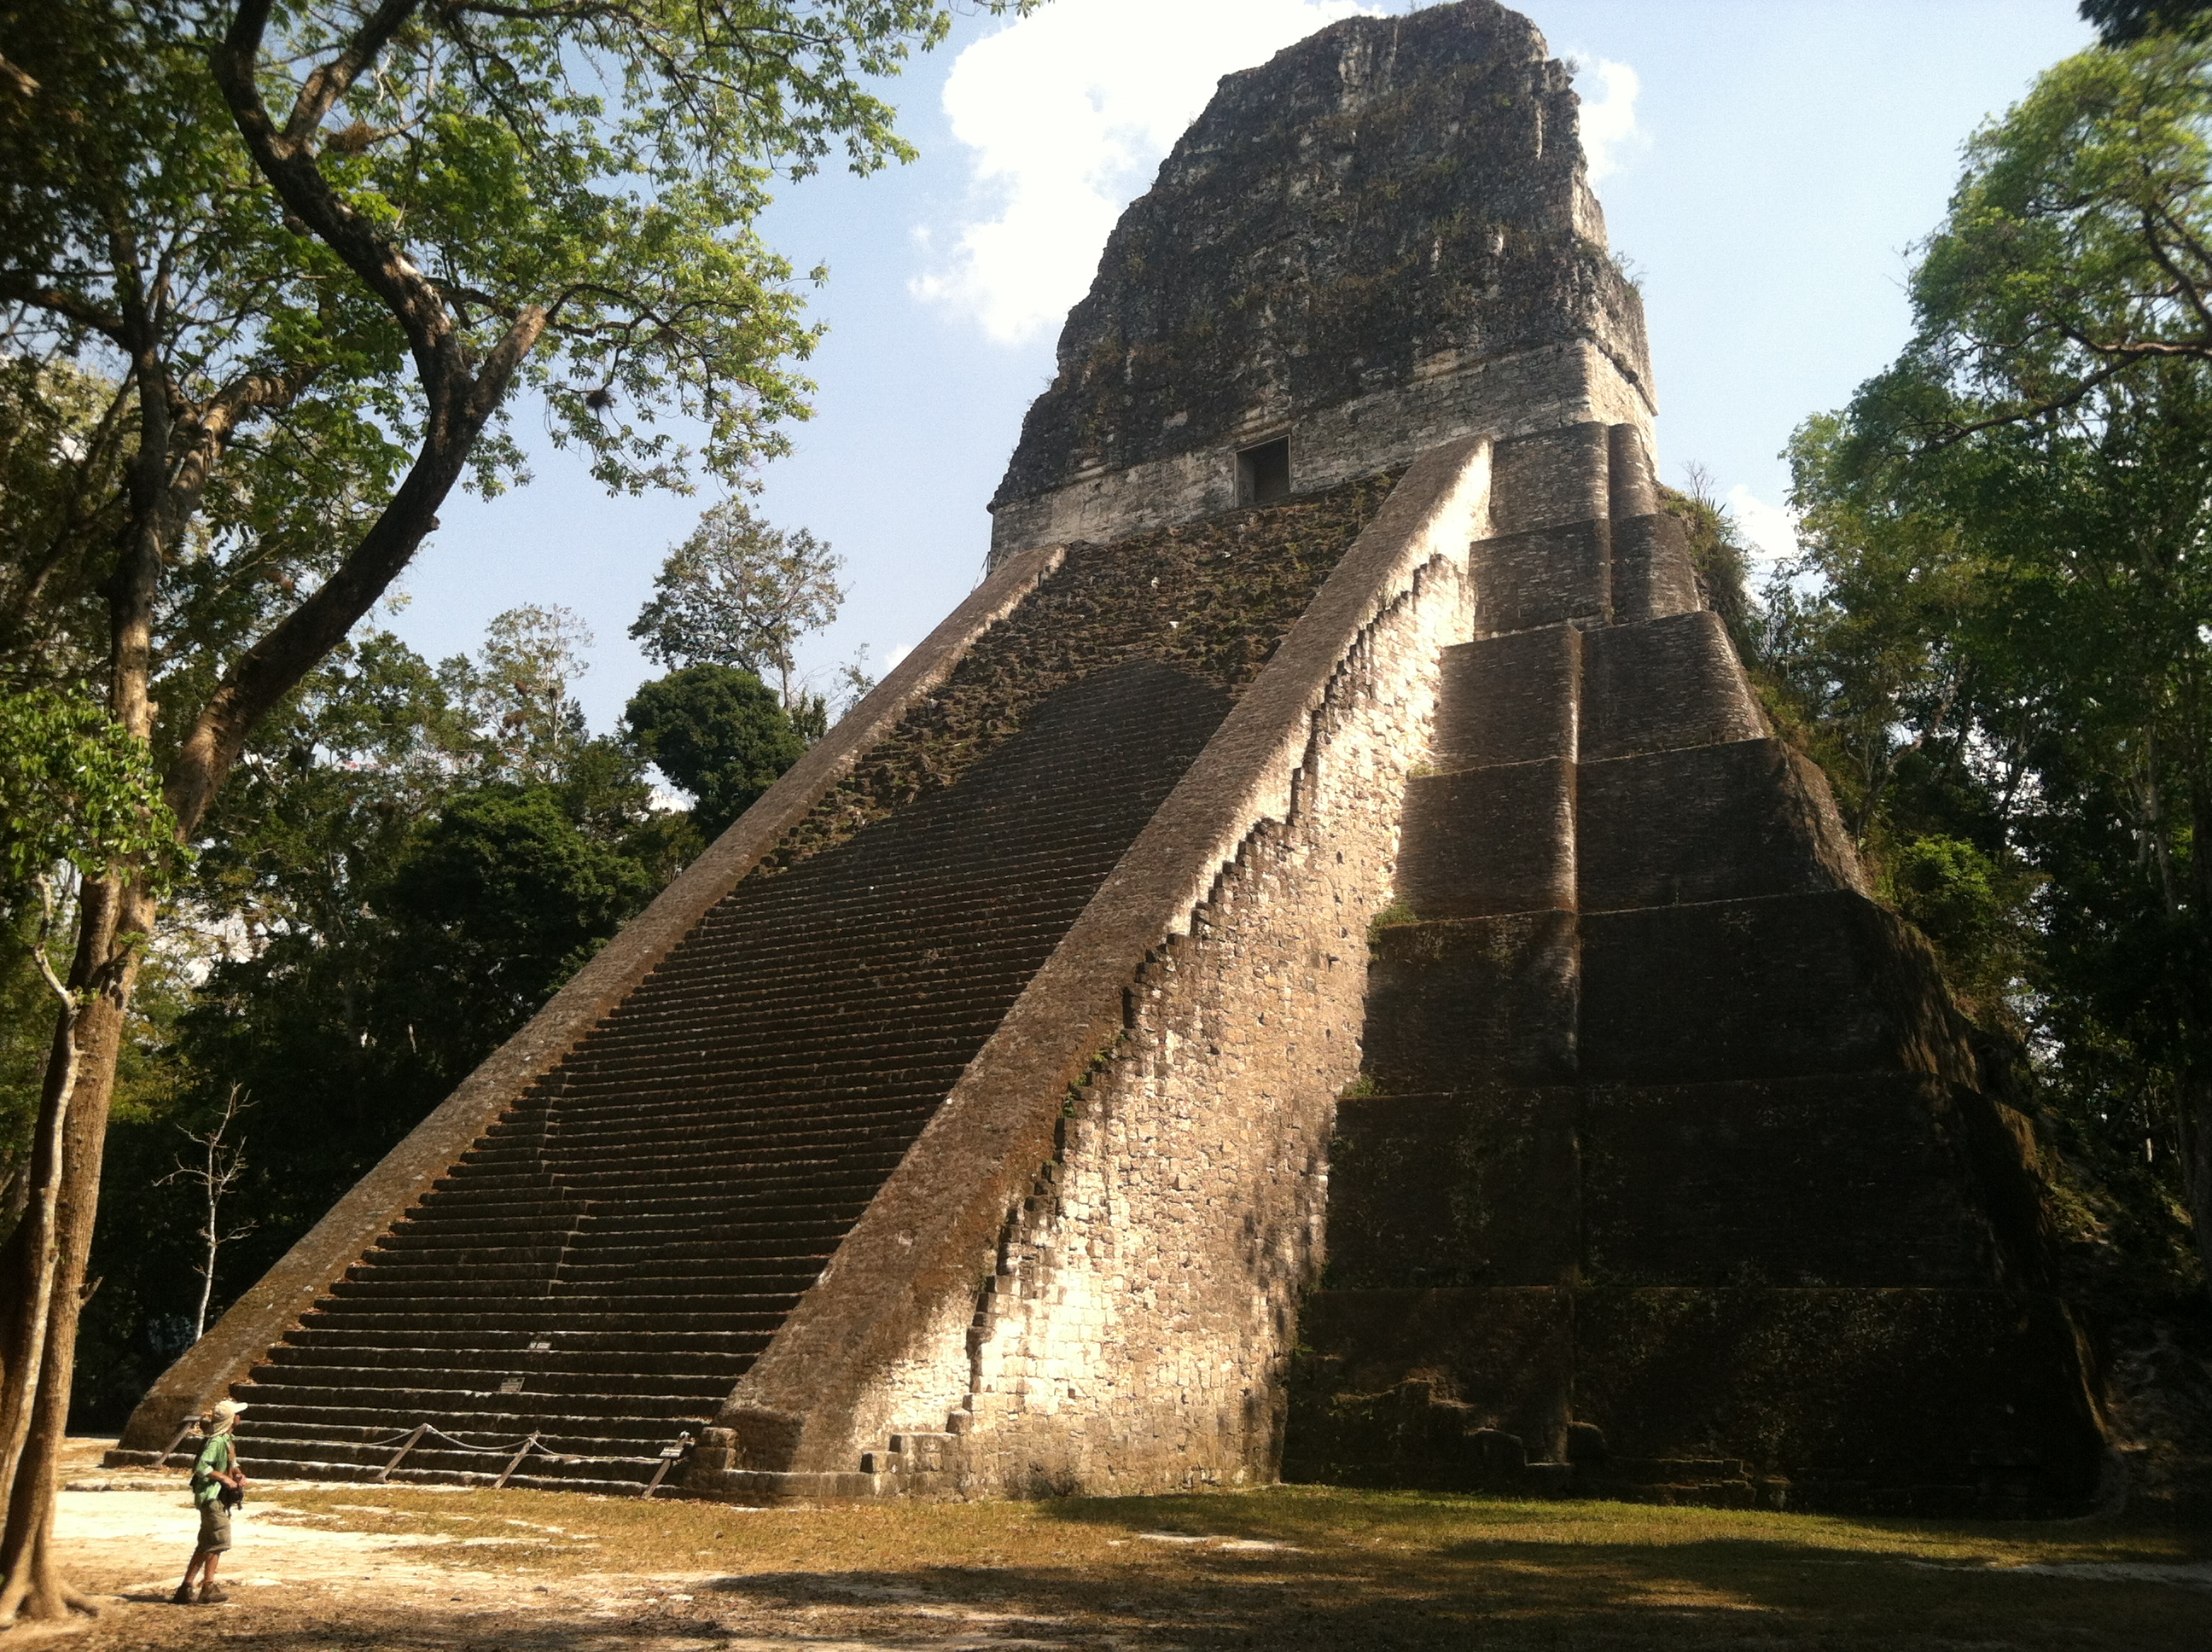 Why Did Ancient Civilizations Build Such Huge Monuments